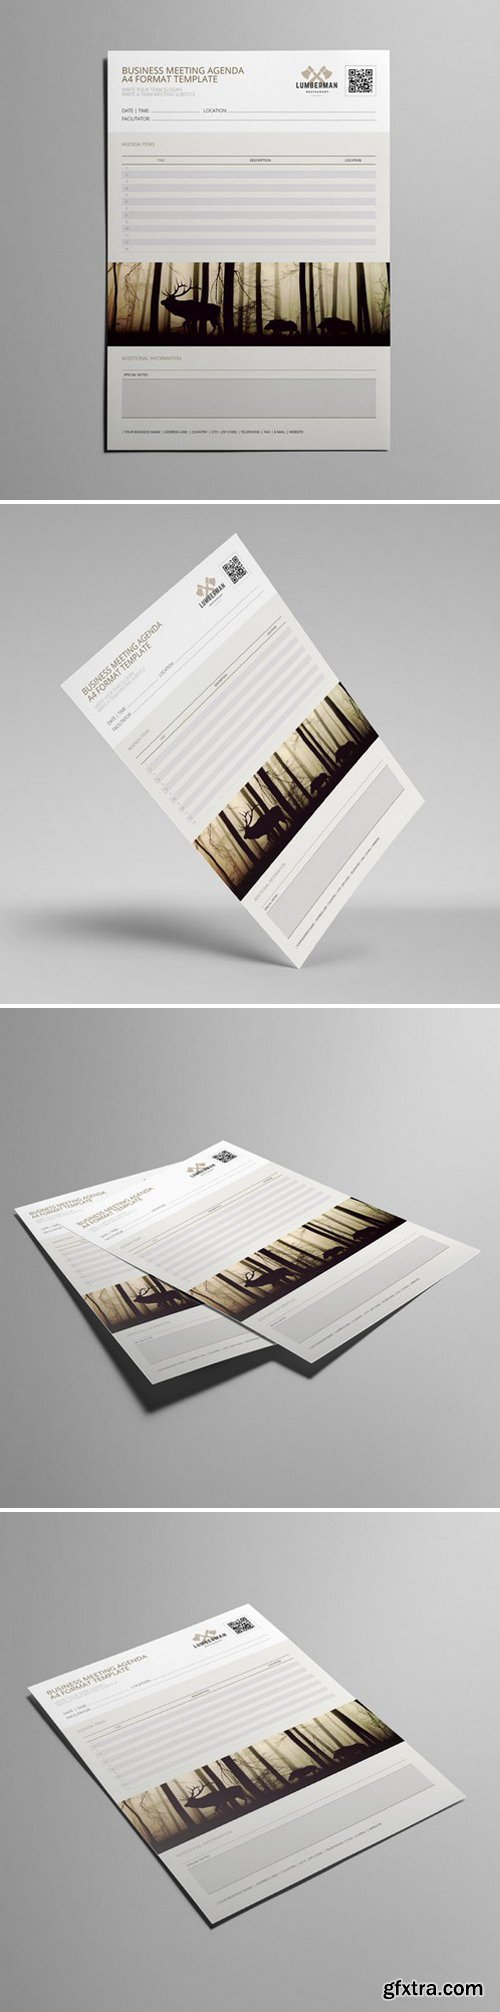 KeBoto - Business Meeting Agenda A4 Format Template 000169